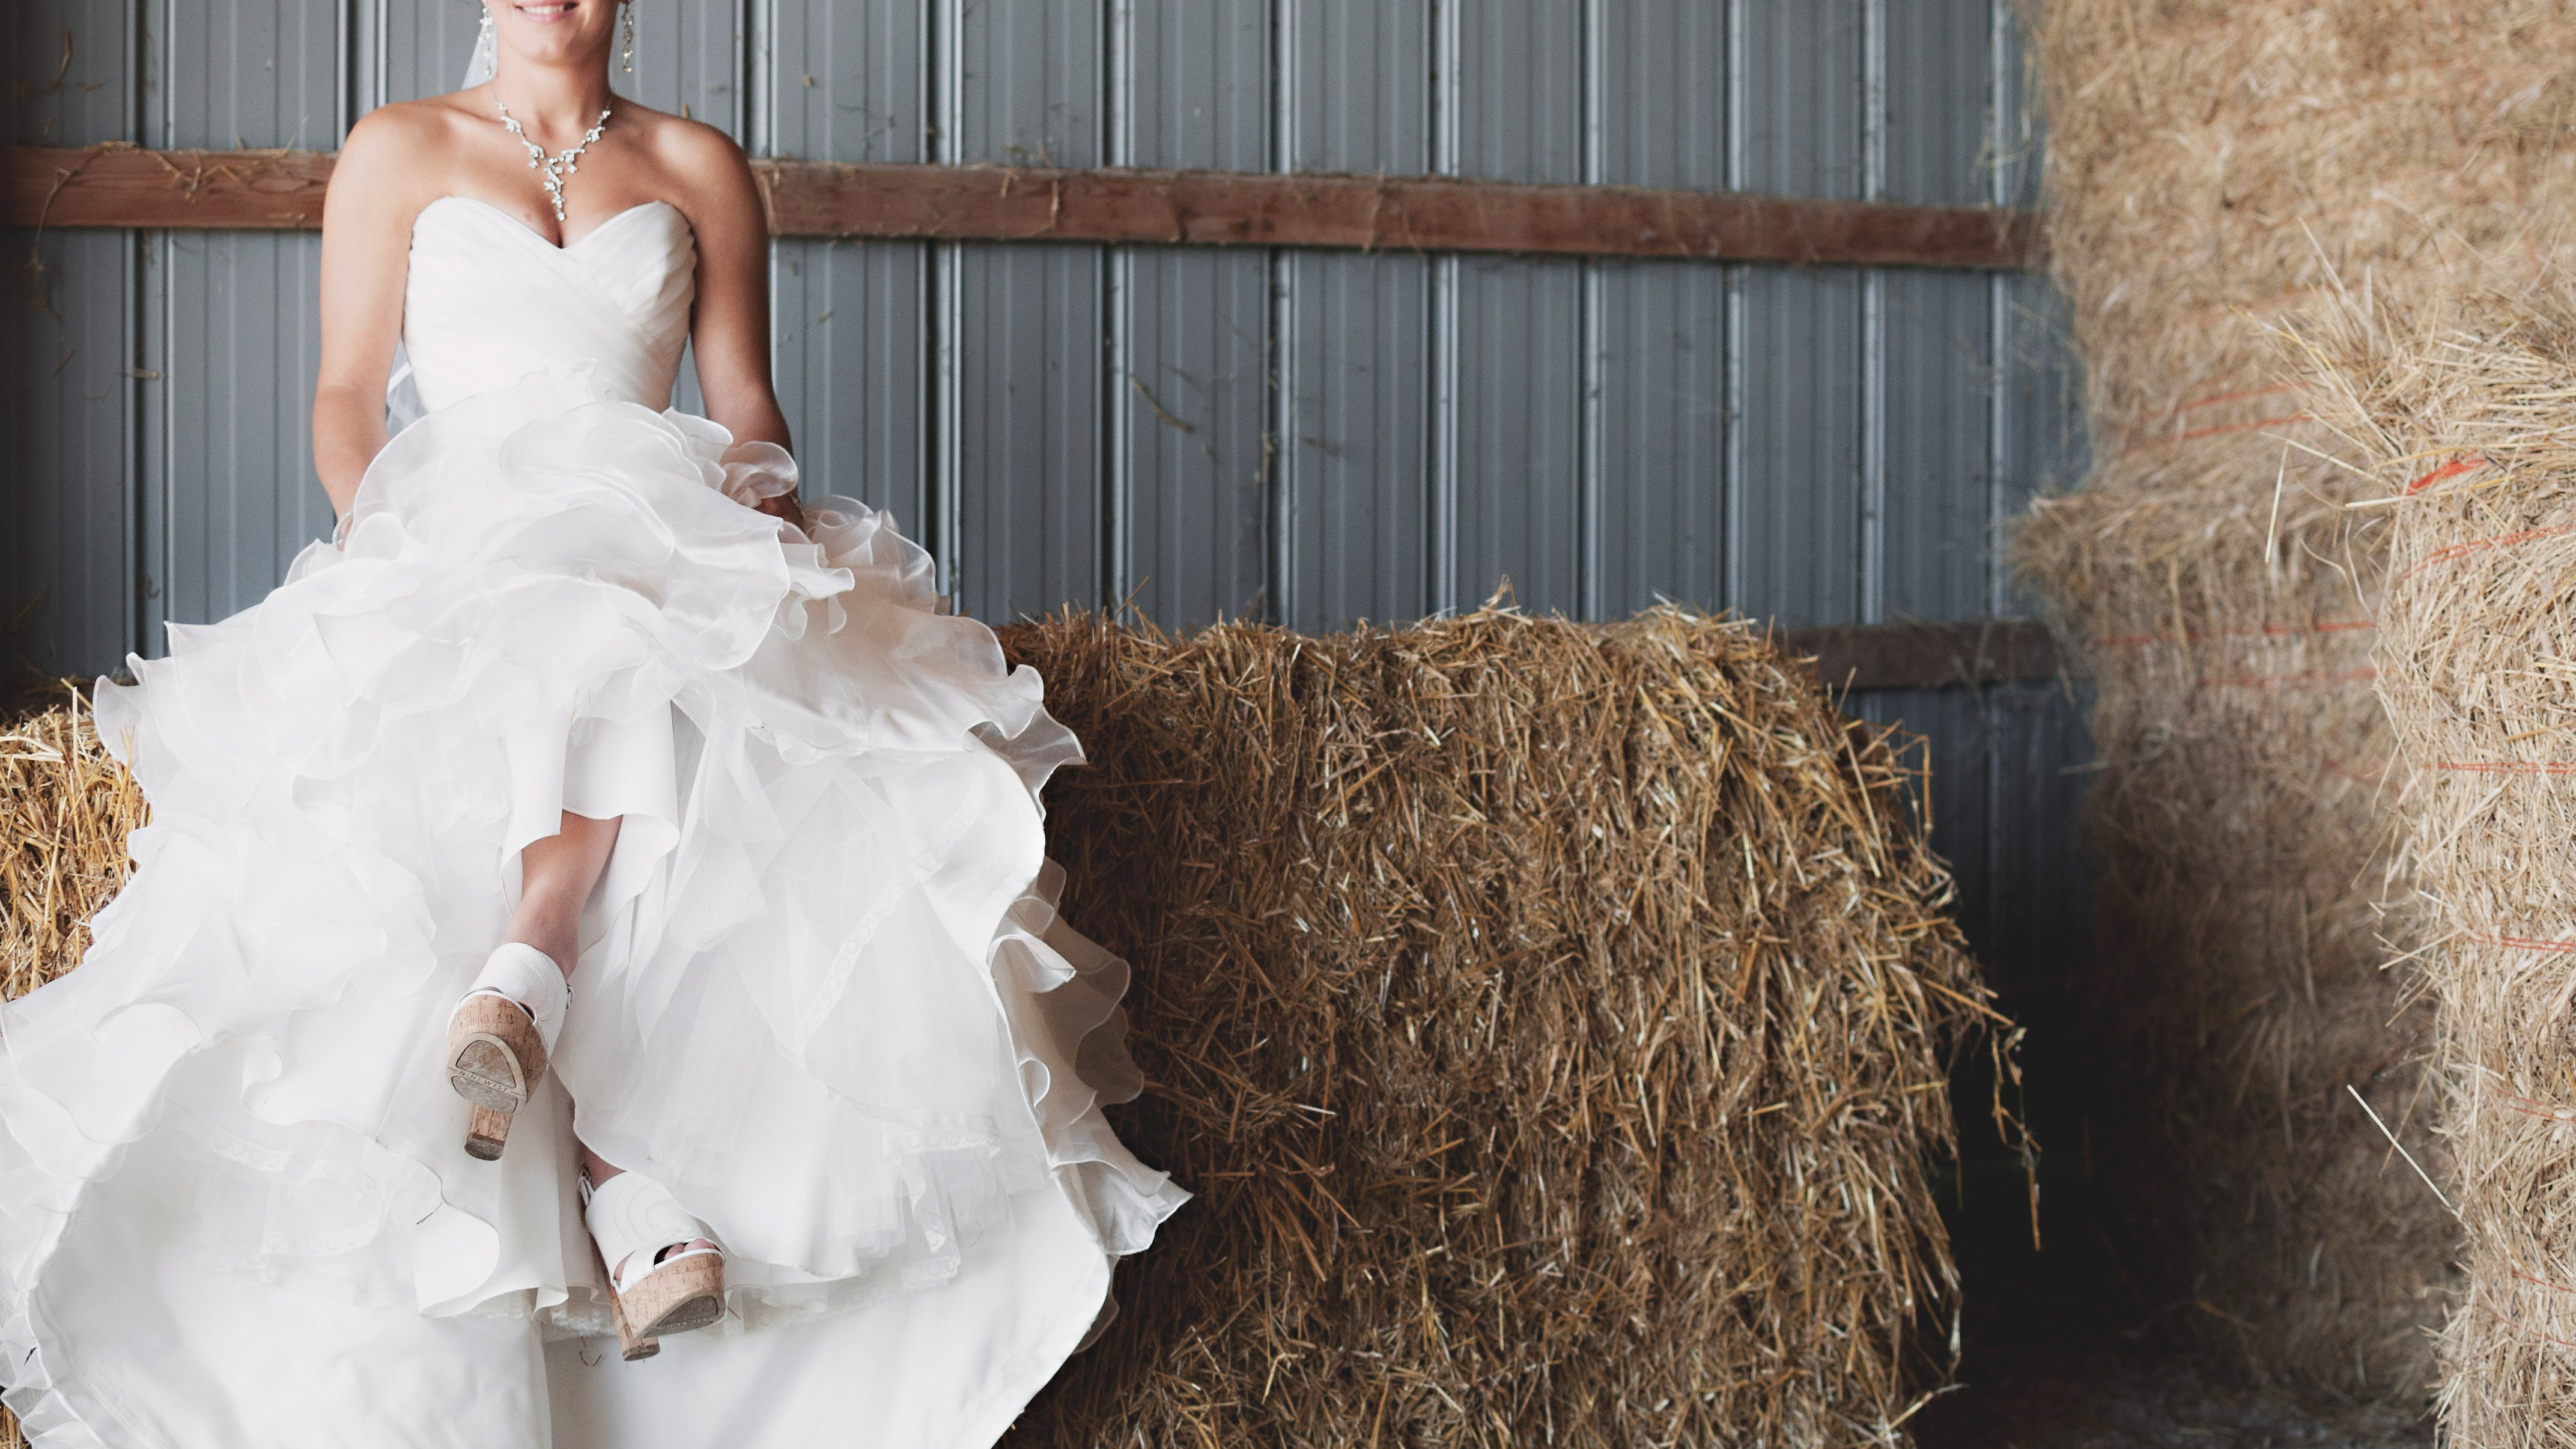 Woman in White Strapless Sweetheart Neckline Bridal Gown Sitting of Brown Hay